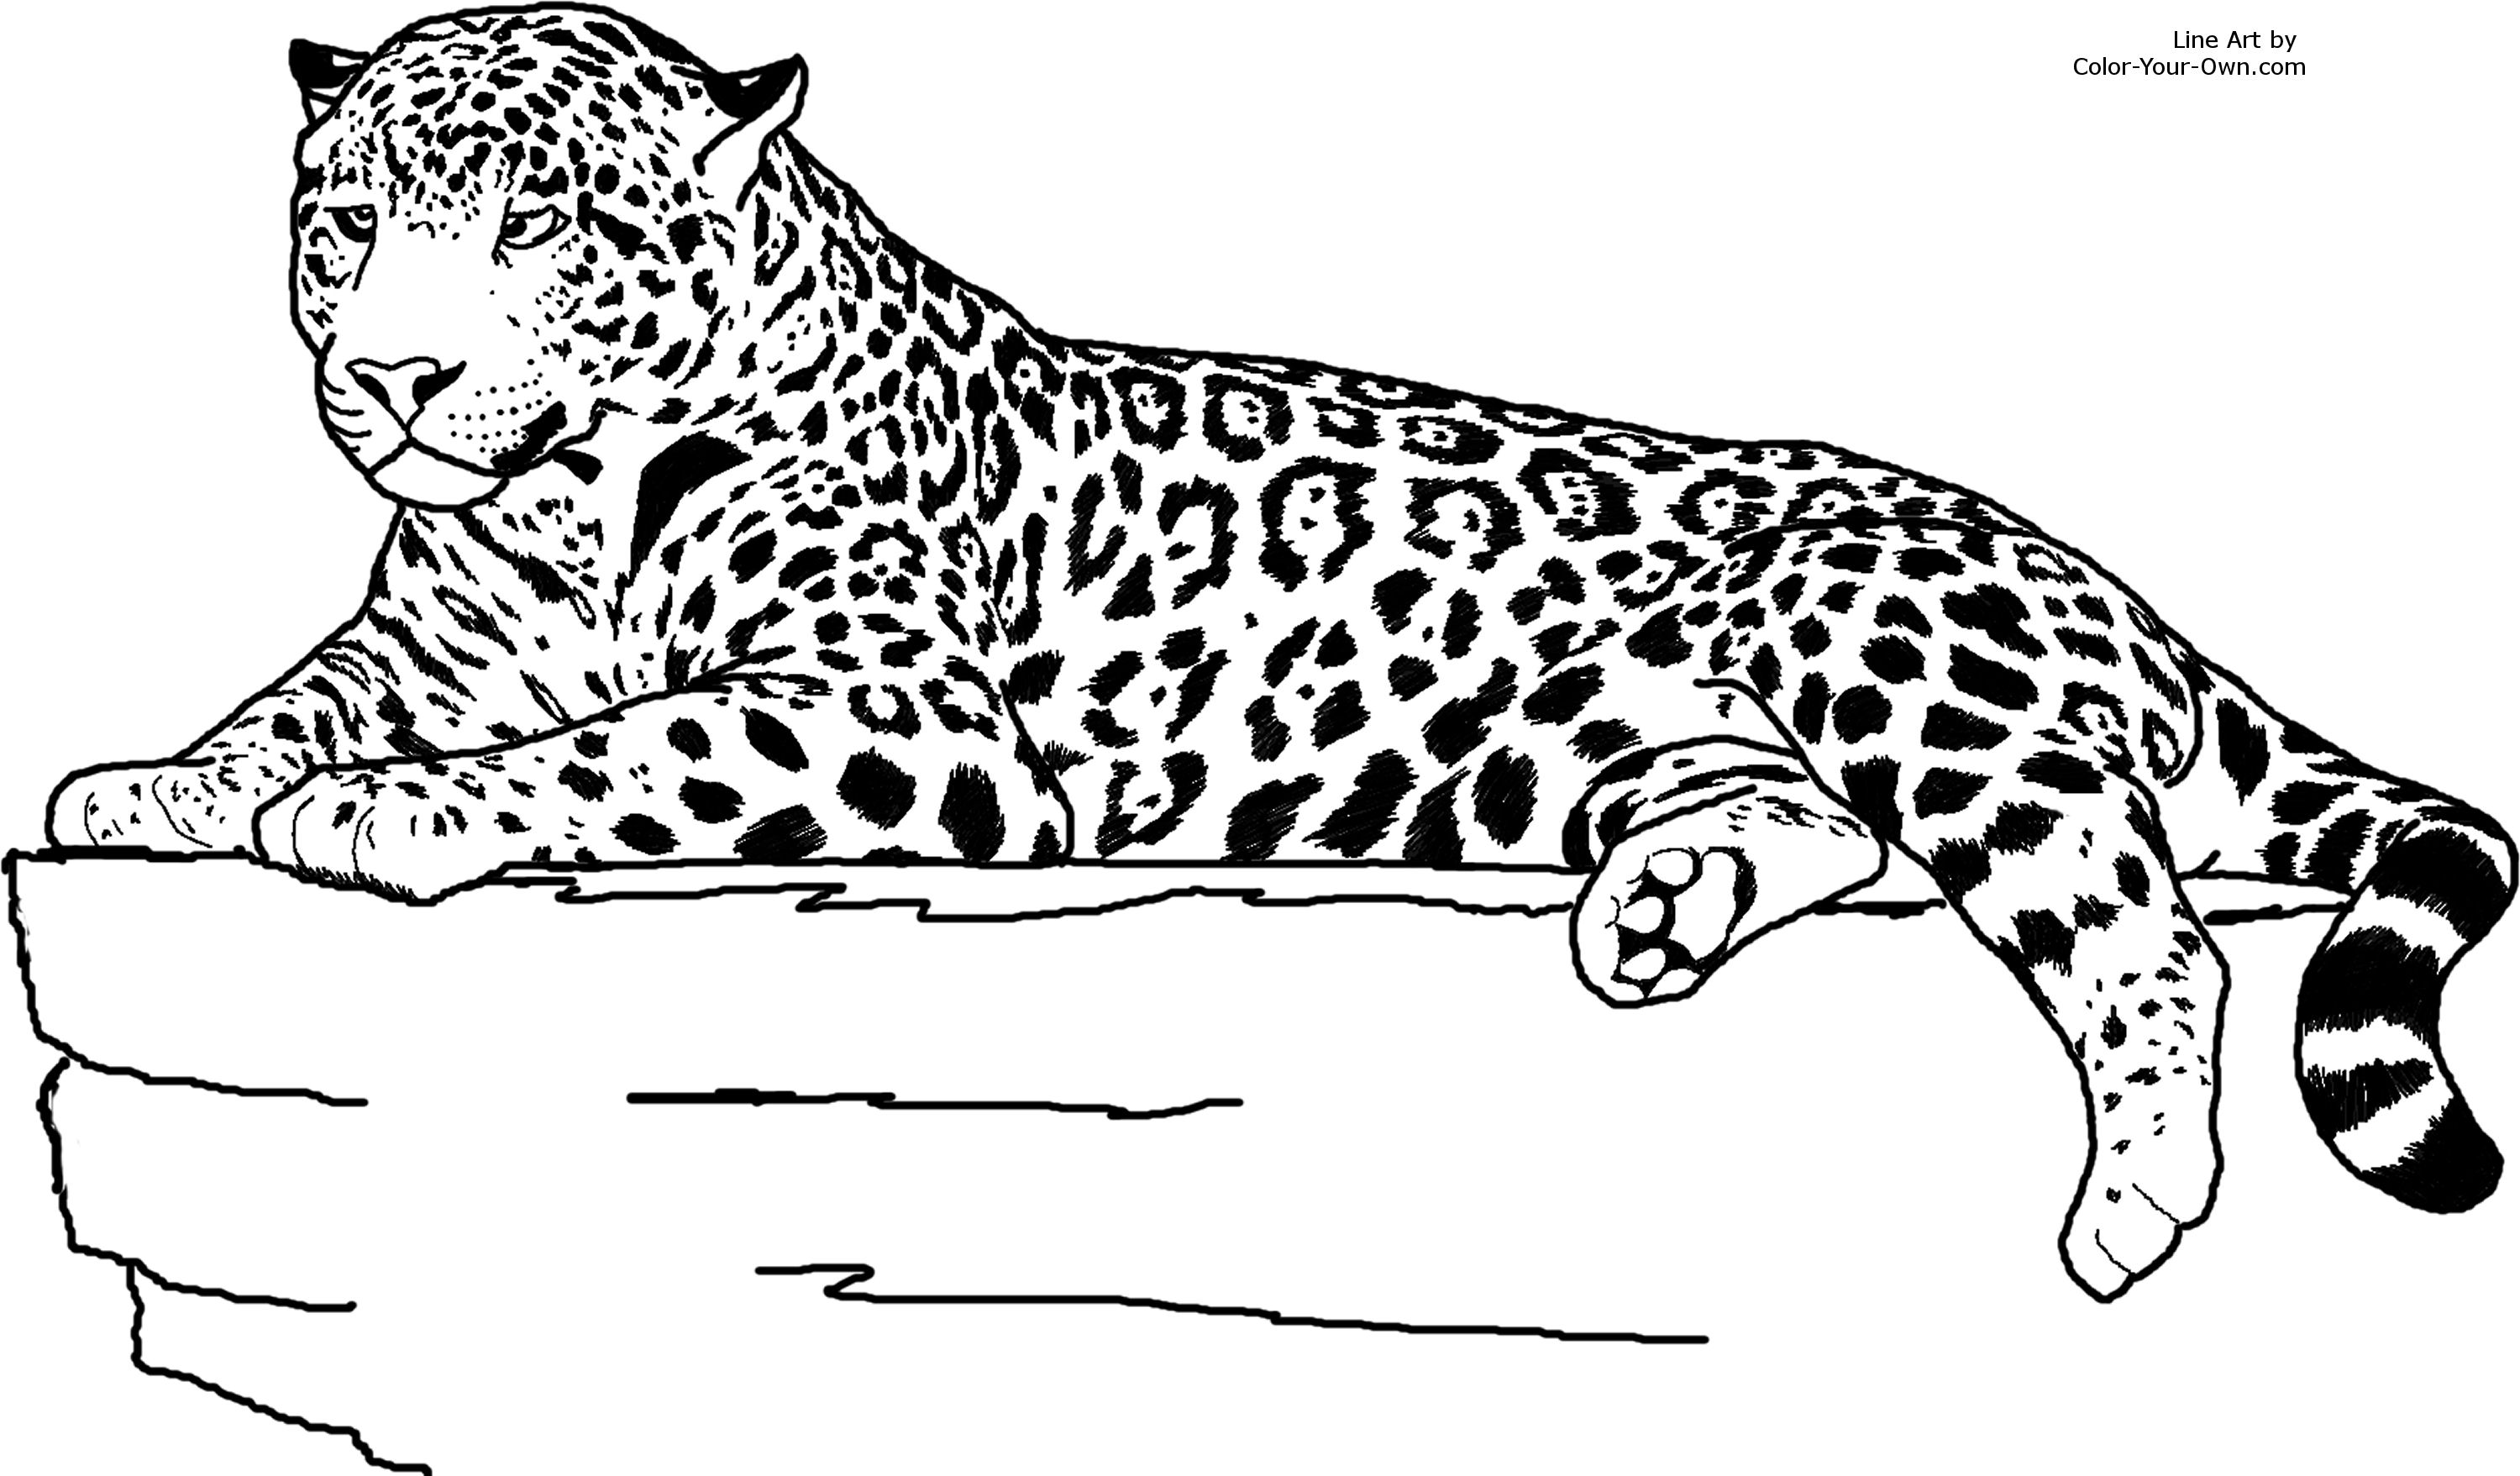 free coloring pages of realistic animals animal coloring pages for adults at getcoloringscom pages free realistic coloring animals of